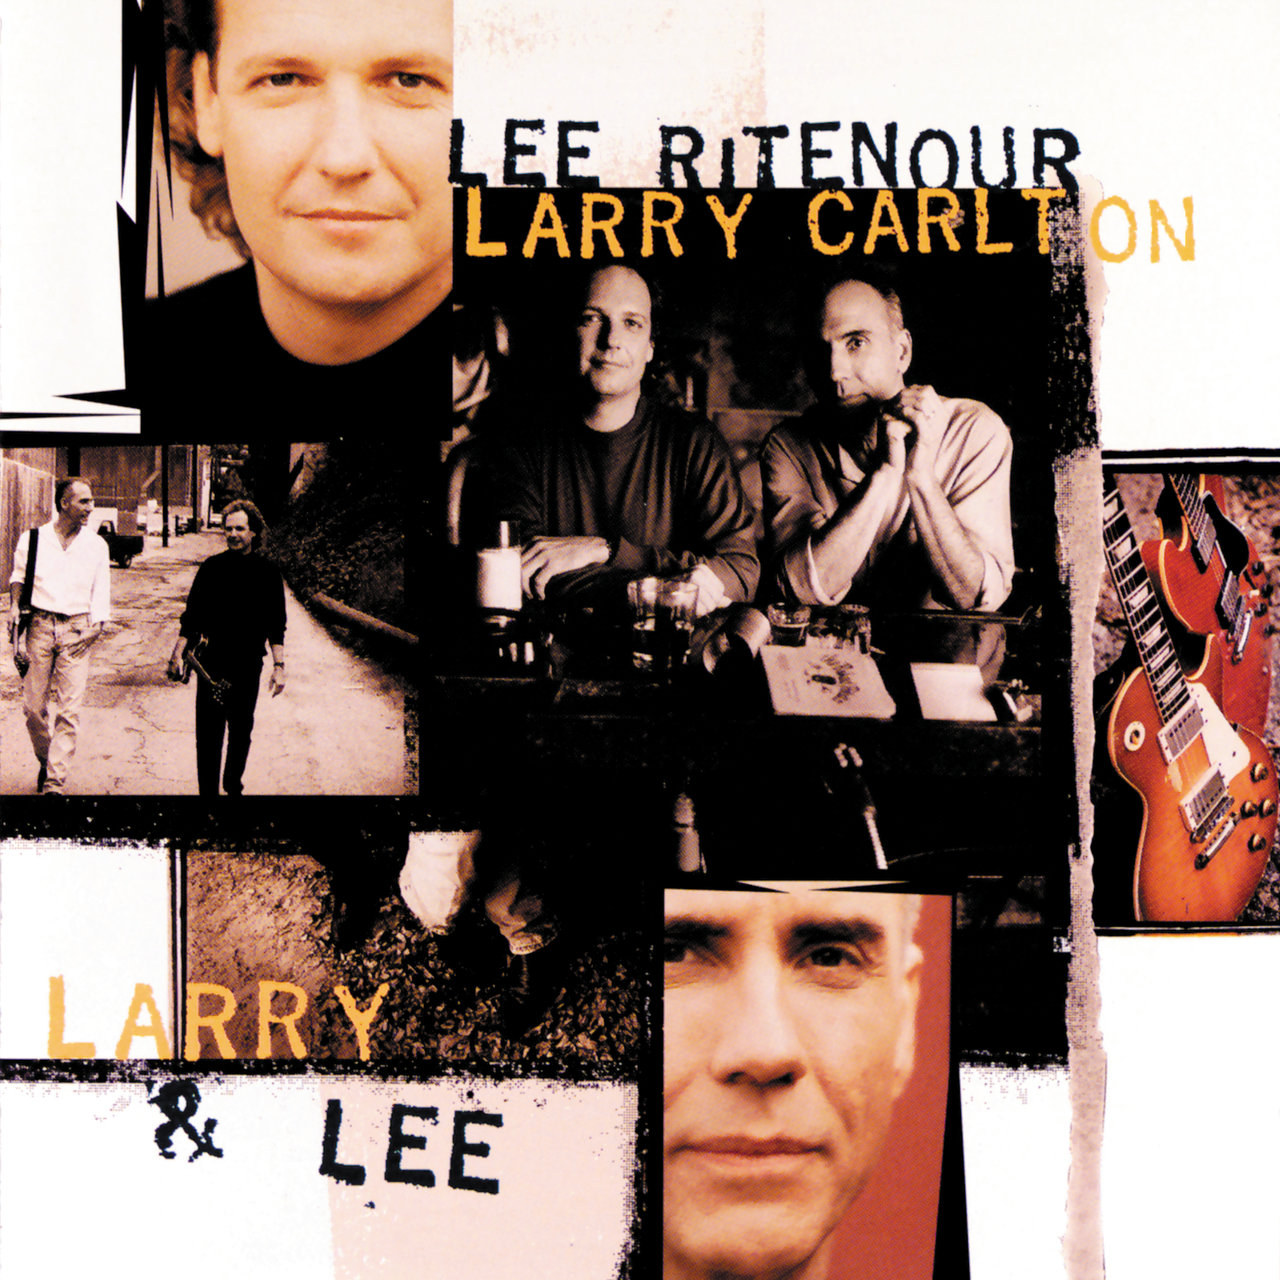 Ritenour Lee, Carlton Larry – Larry & Lee